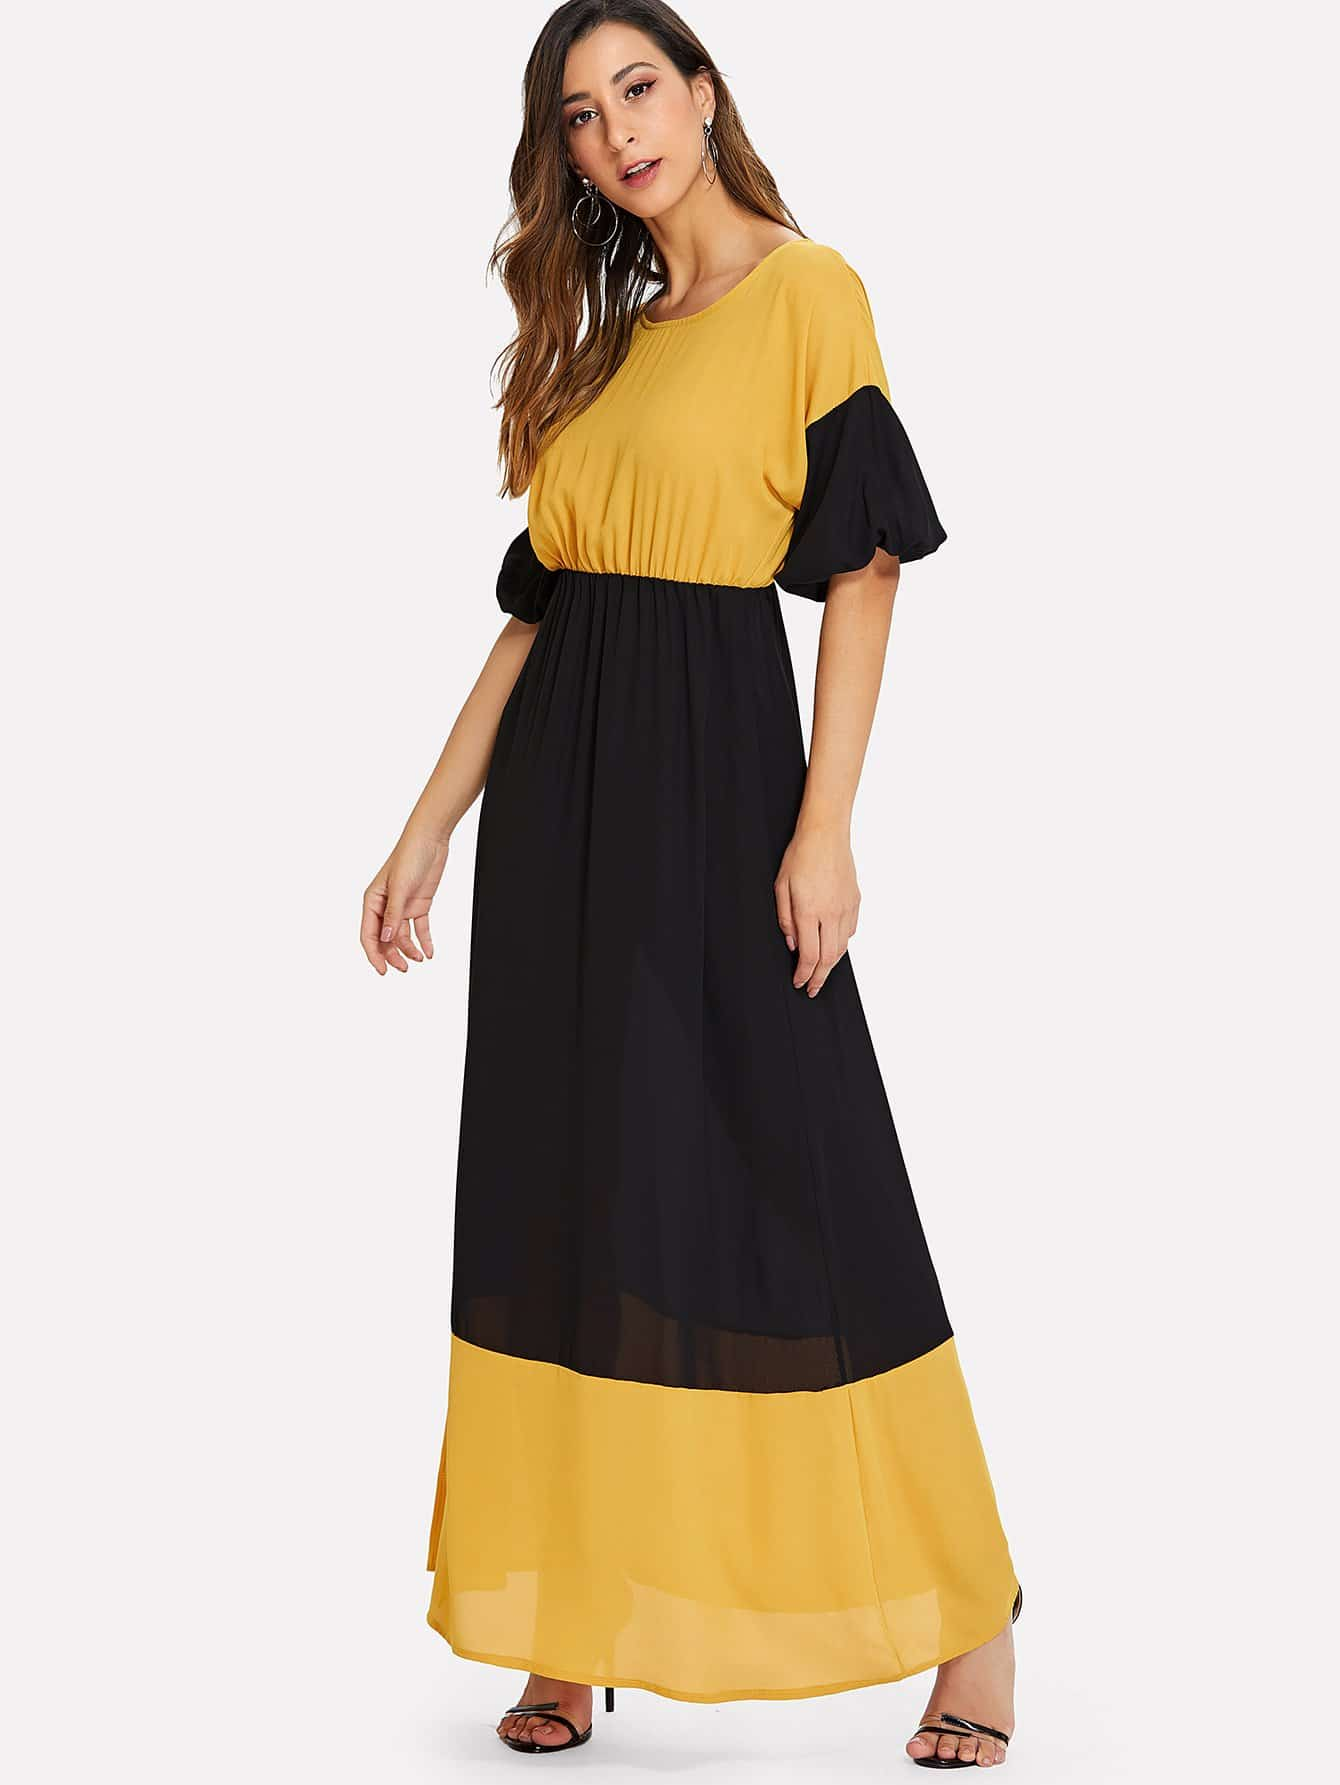 Contrast Panel Colorblock Dress др коффер m 40587 04 шапка